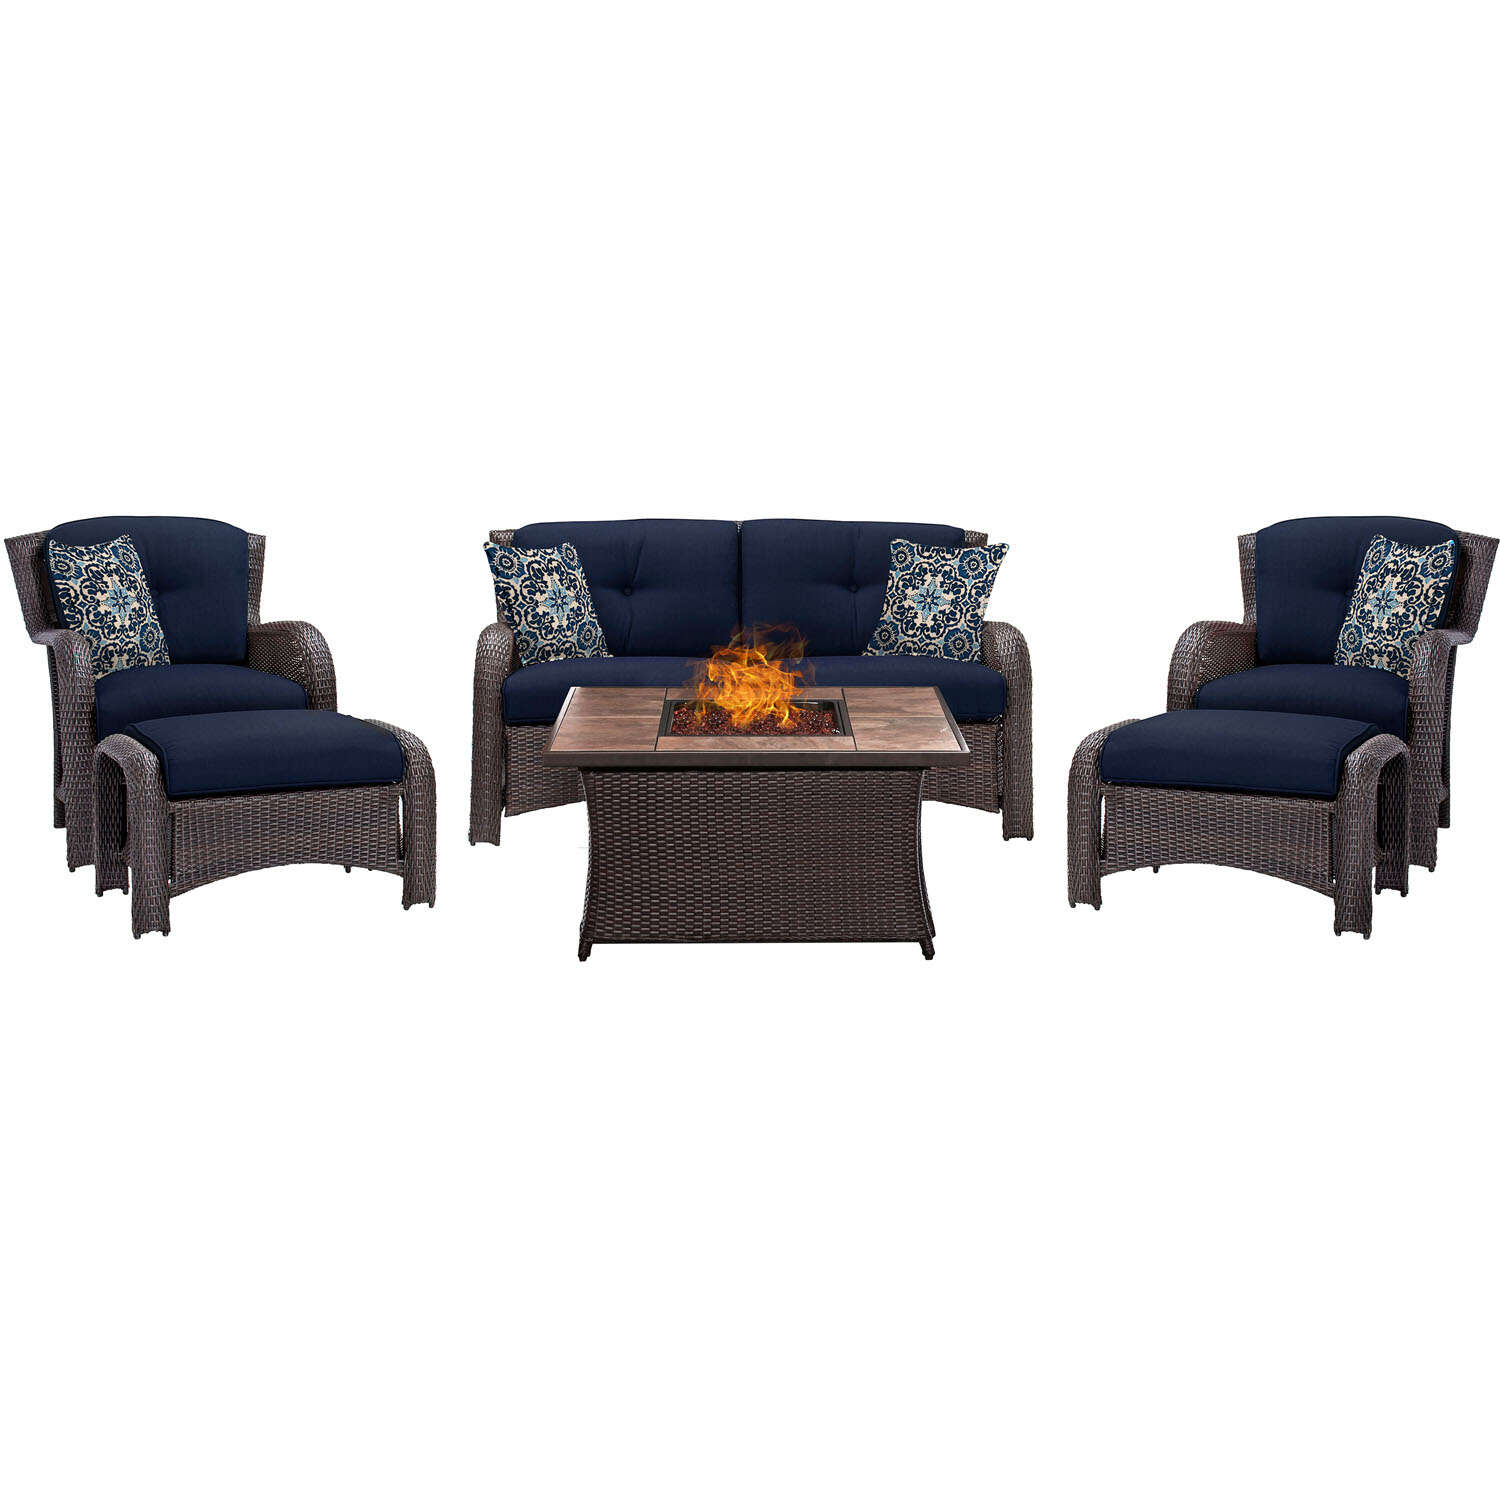 Hanover  Strathmere  6 pc. Espresso  Steel  Firepit Seating Set  Navy Blue